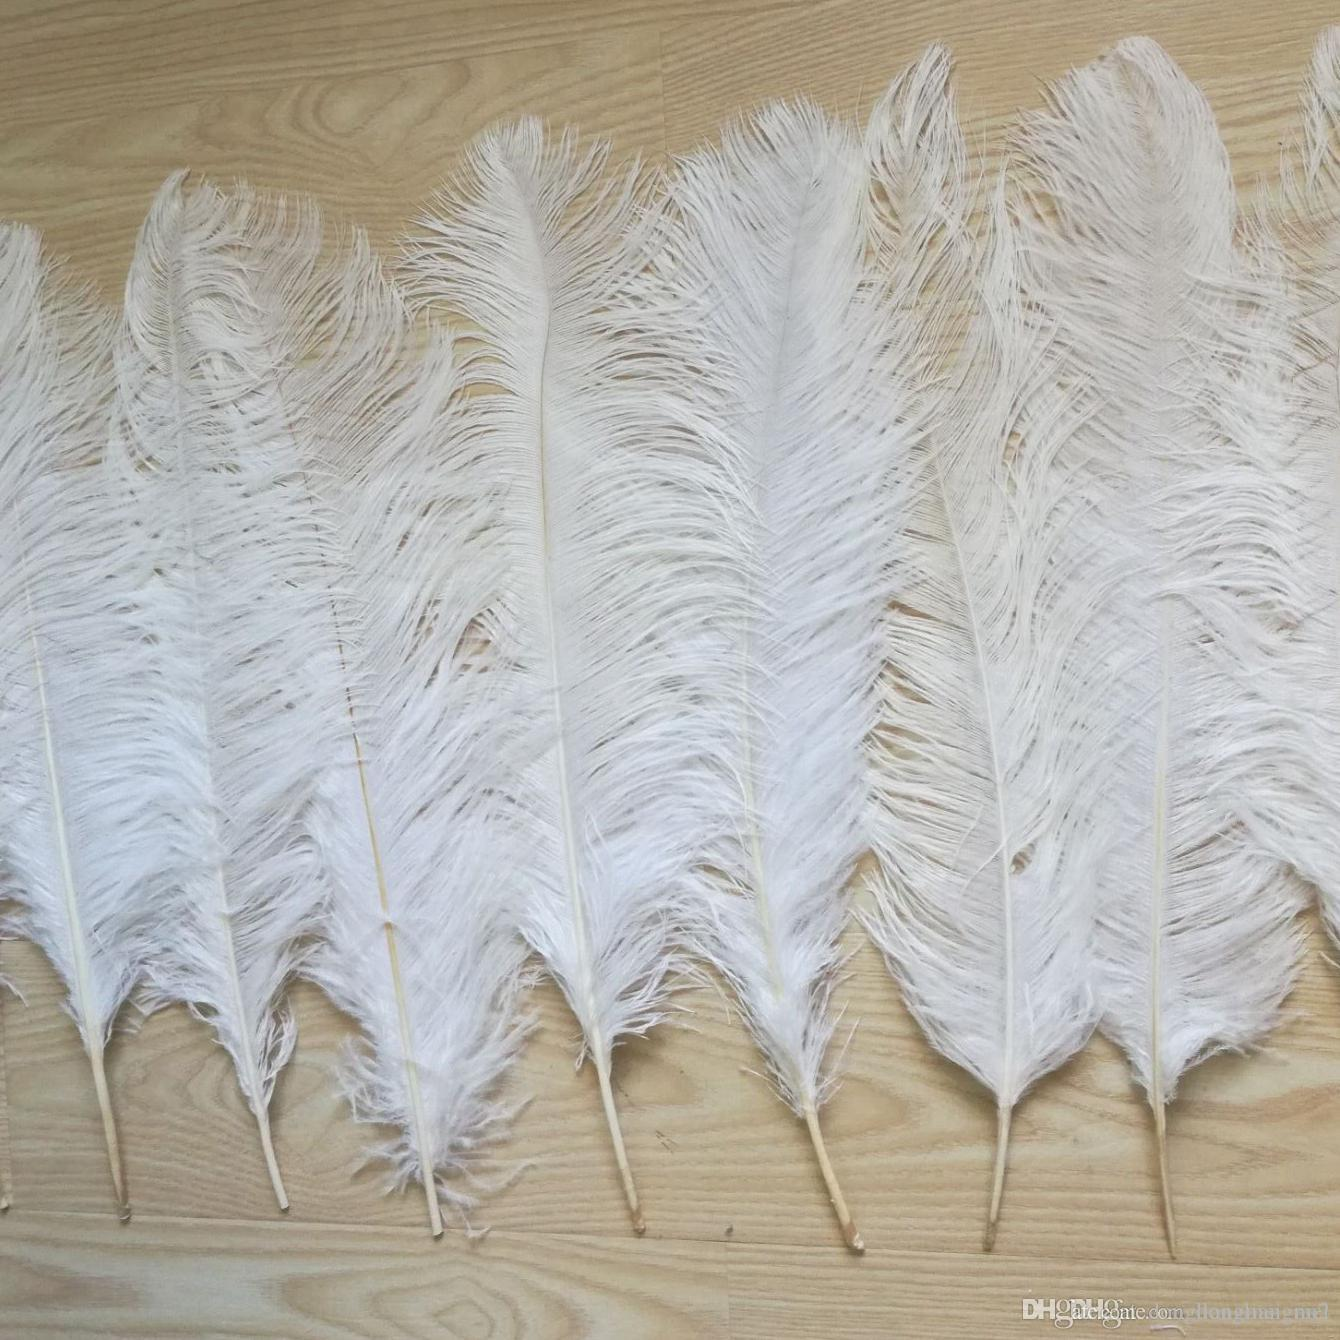 Large Pure White Ostrich Feathers Plume 15-45cm Long Wedding Party Costume Craft